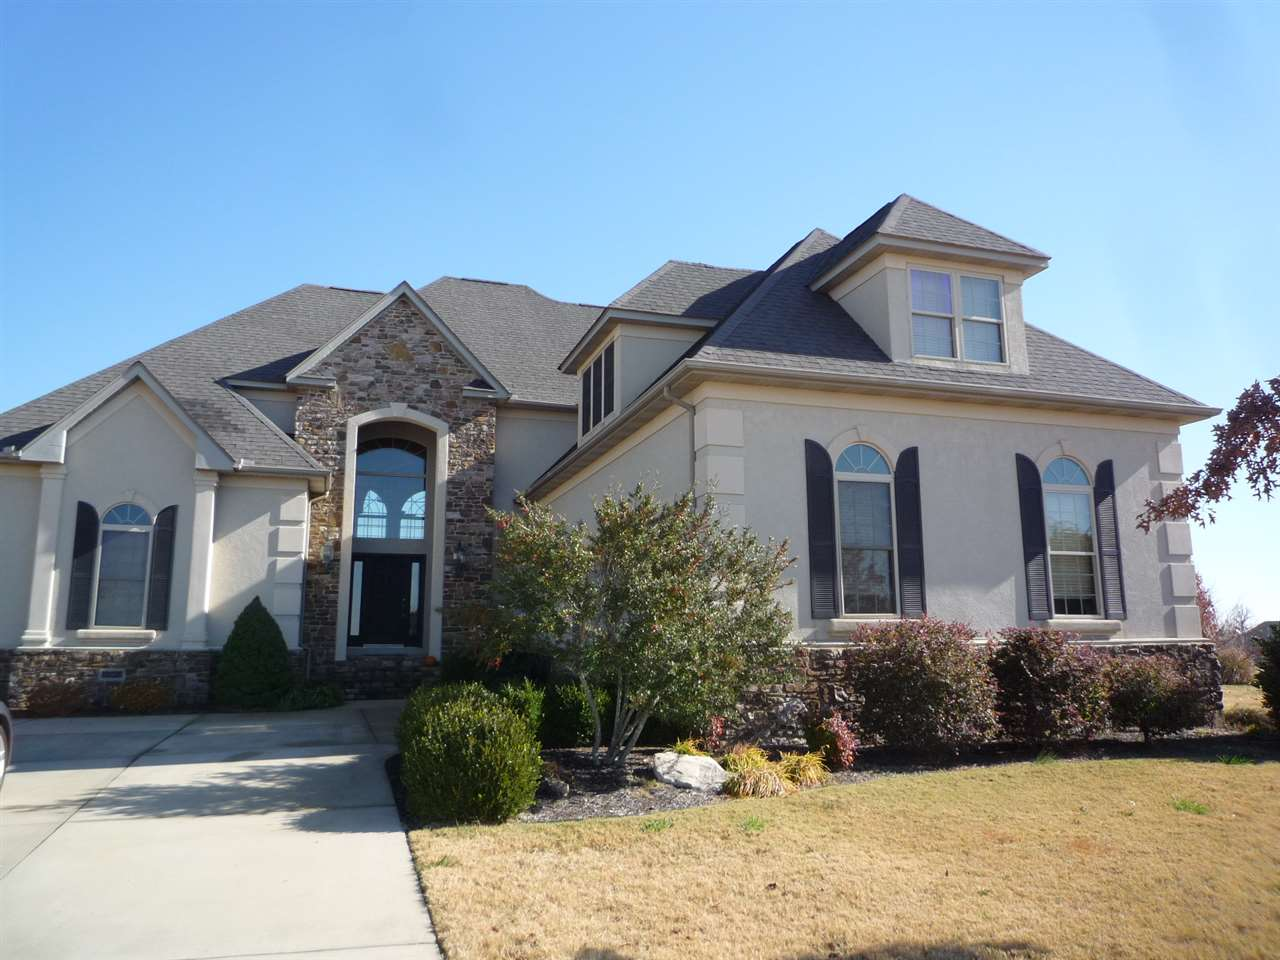 59 ST ANDREWS COURT, Mountain Home, AR 72653